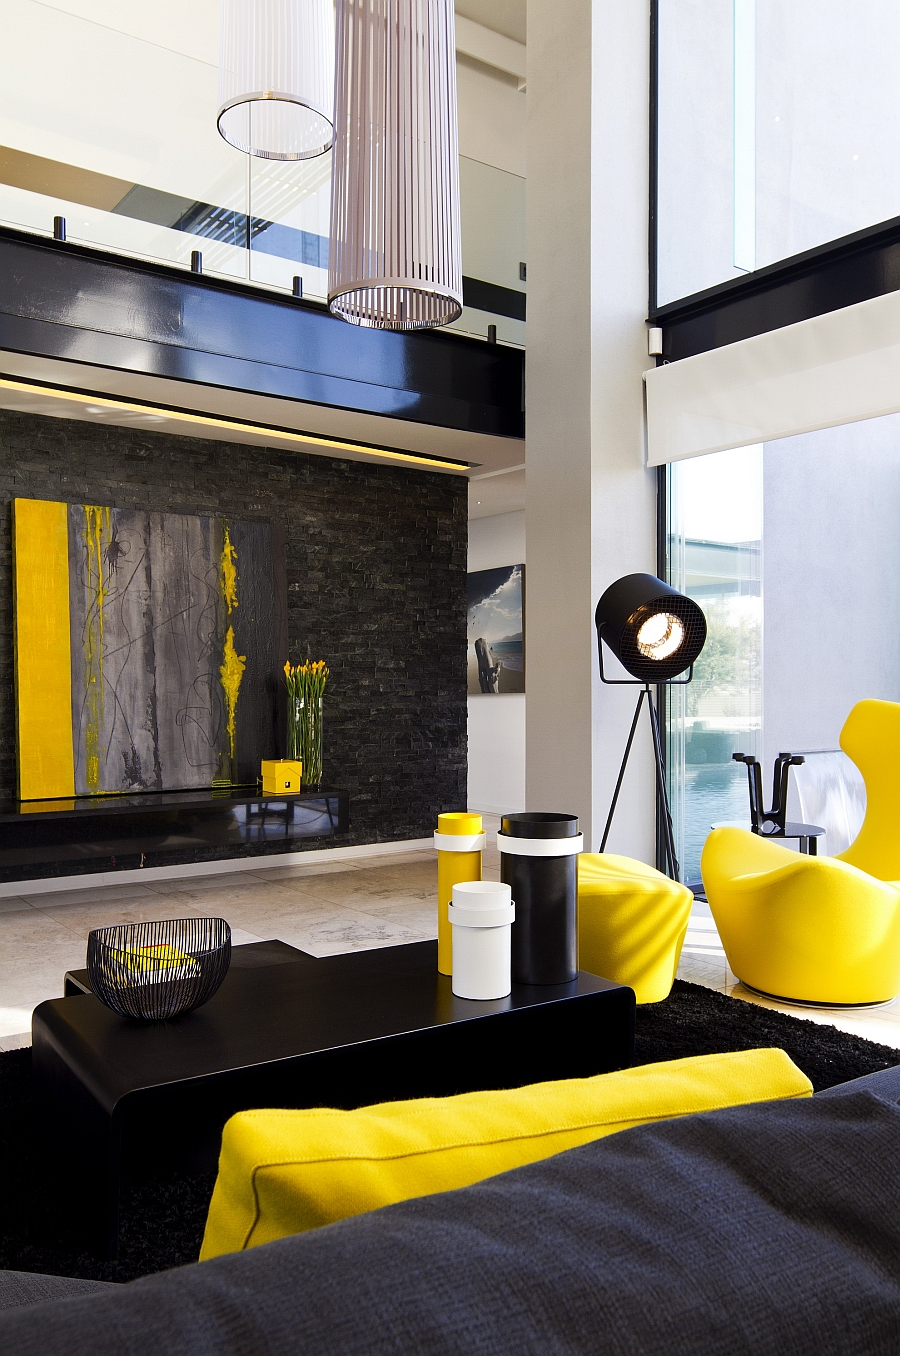 Bright yellow accents enliven the contemporary living room with dark hues